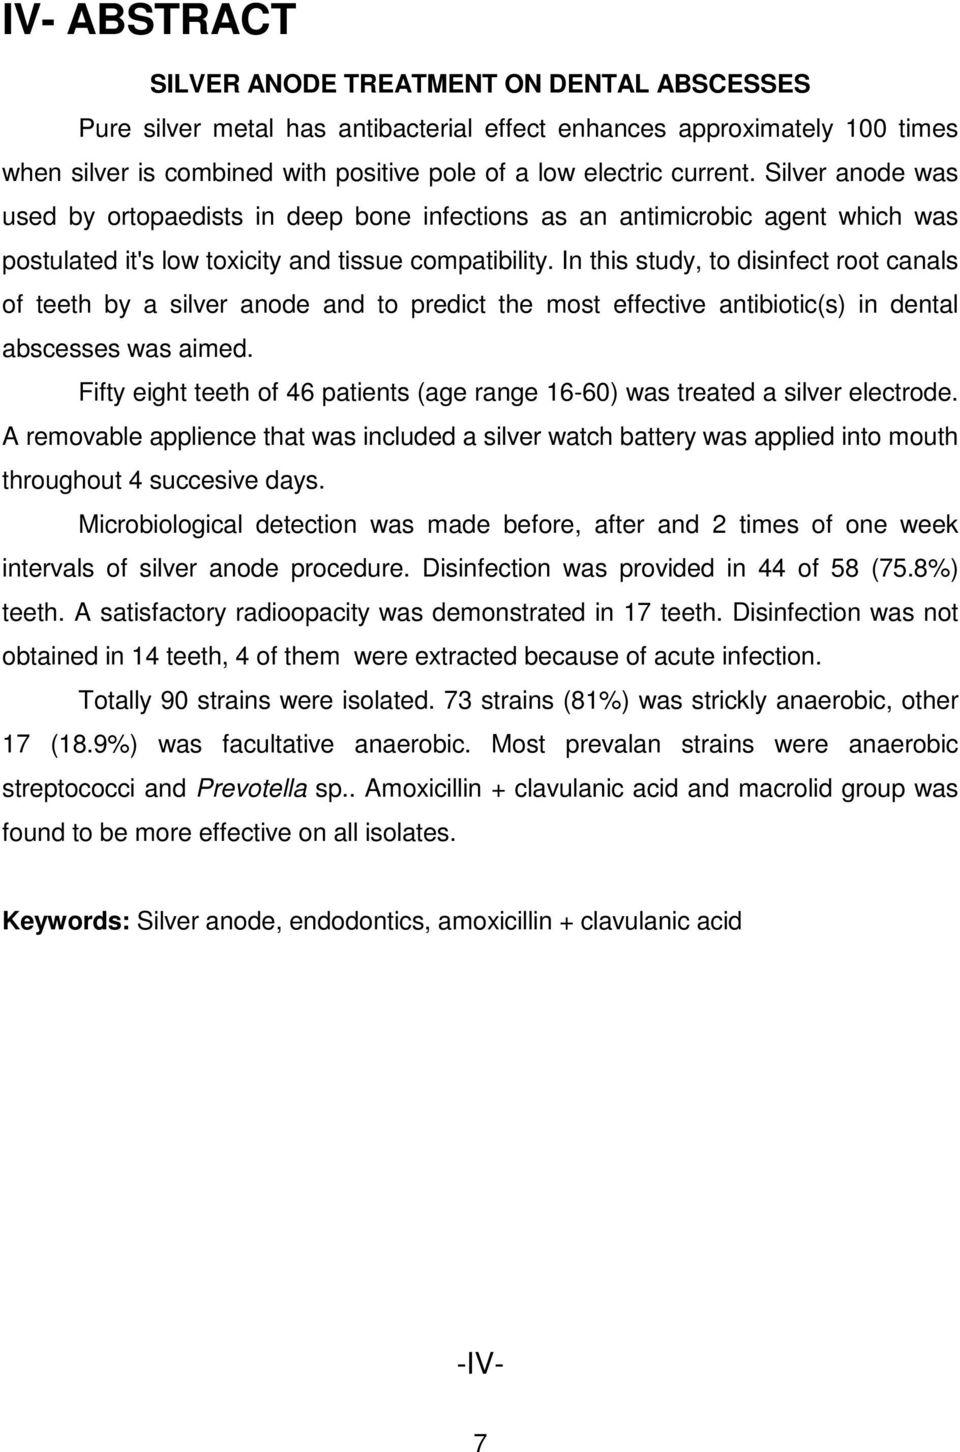 In this study, to disinfect root canals of teeth by a silver anode and to predict the most effective antibiotic(s) in dental abscesses was aimed.